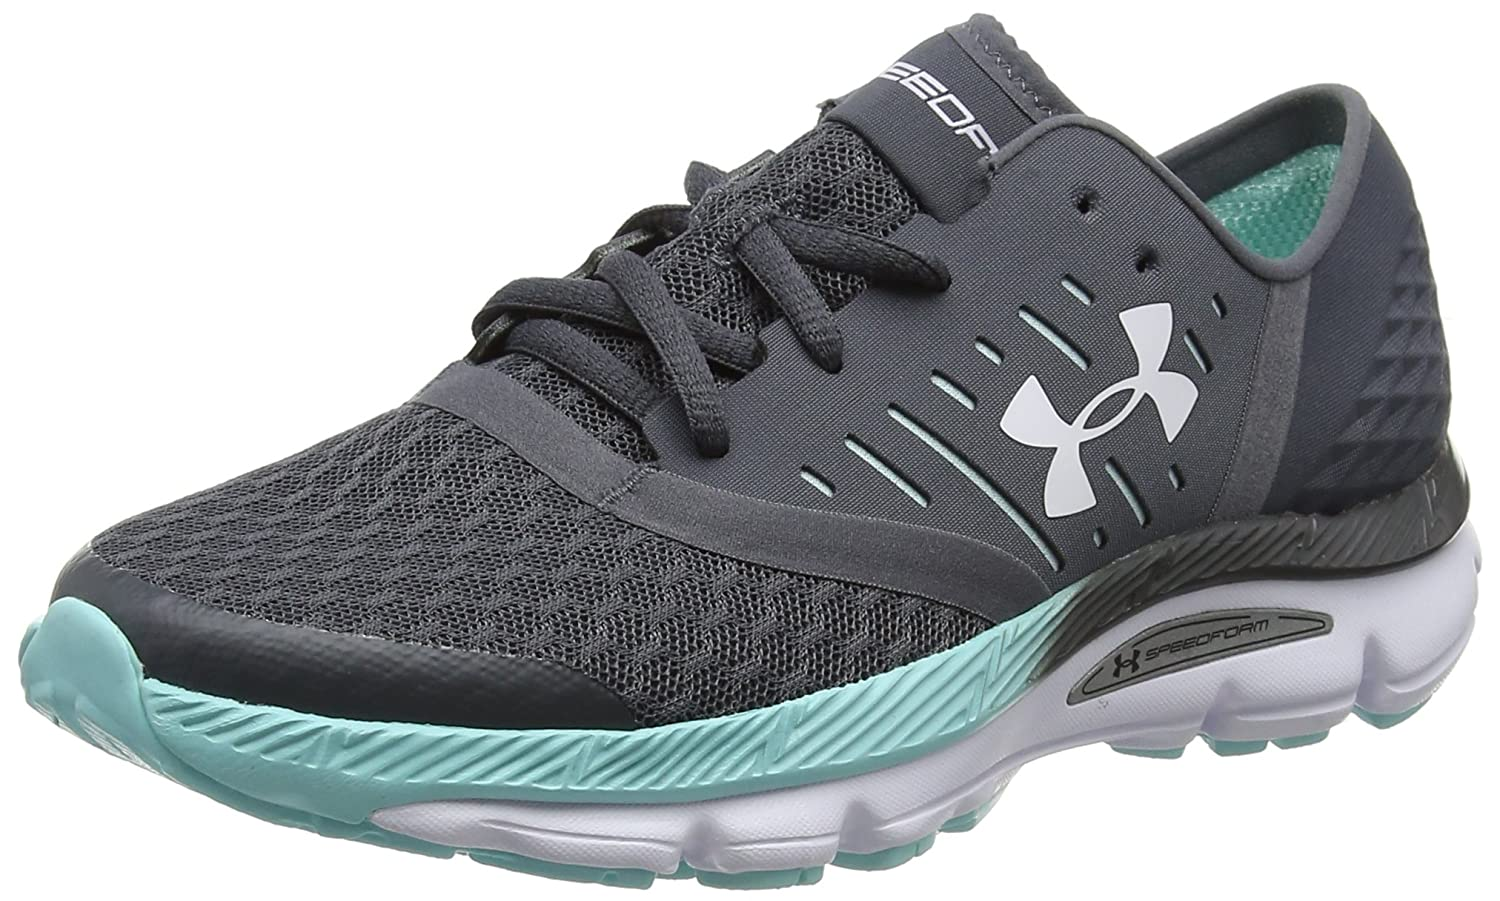 Under Armour Women's Speedform Intake Running Shoe, Black/Stealth Gray/White B01N7HIPD9 5 B(M) US|Rhino Gray/Blue Infinity/White